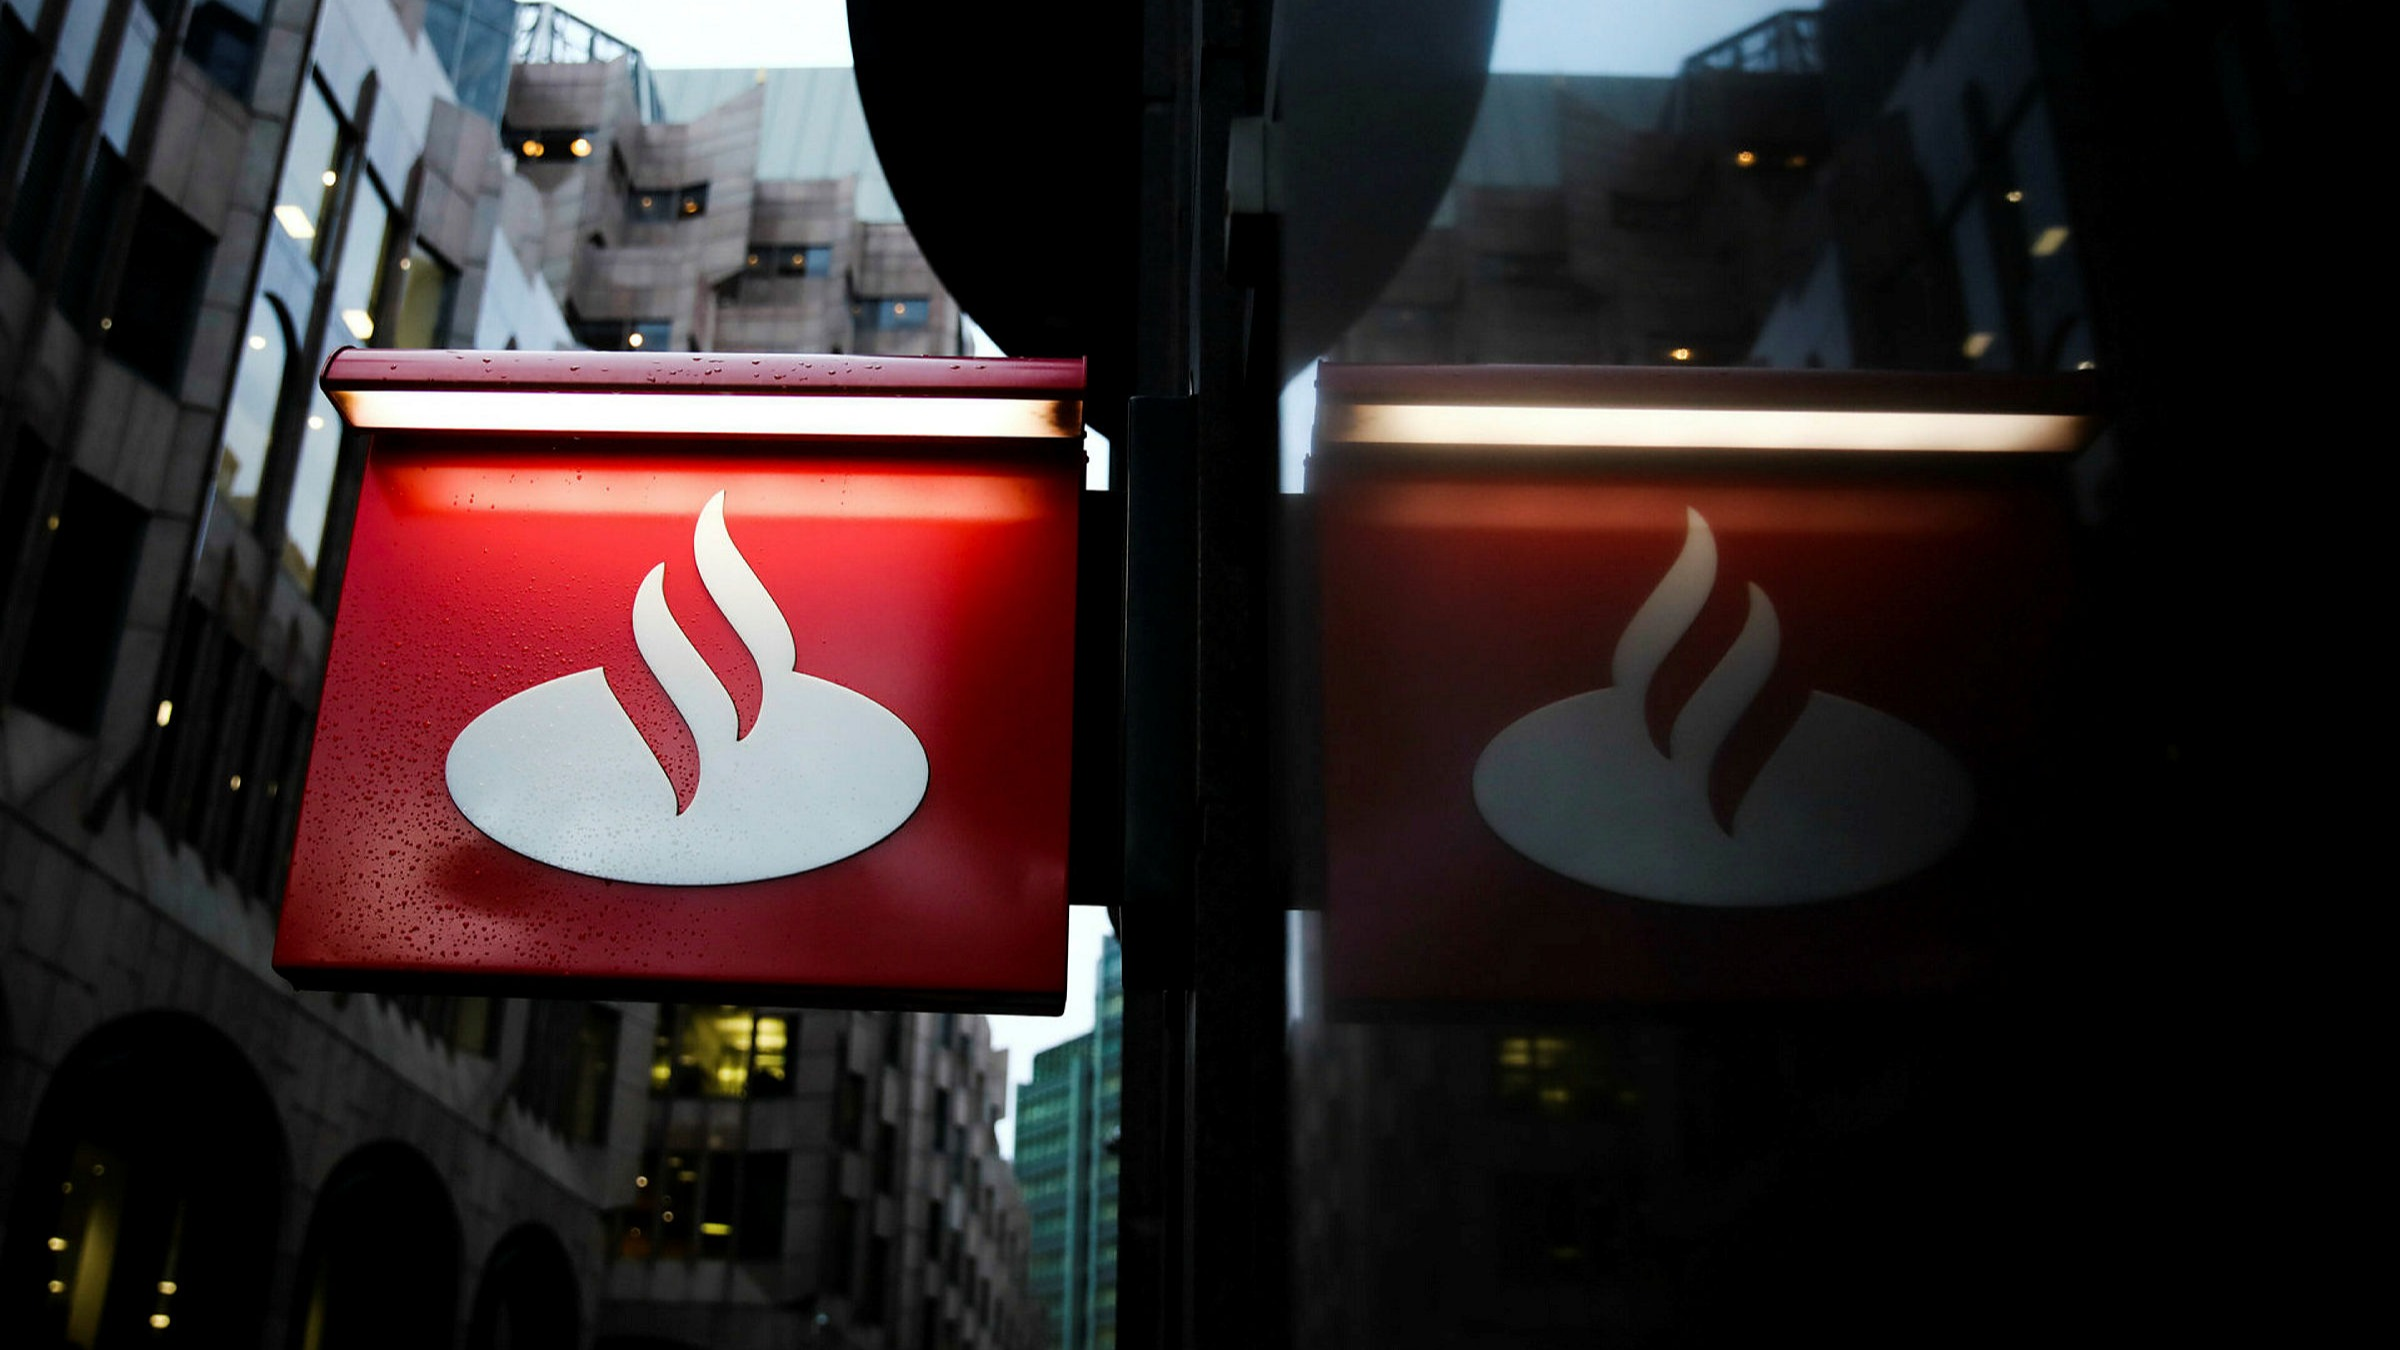 Santander cuts rate on 123 current account